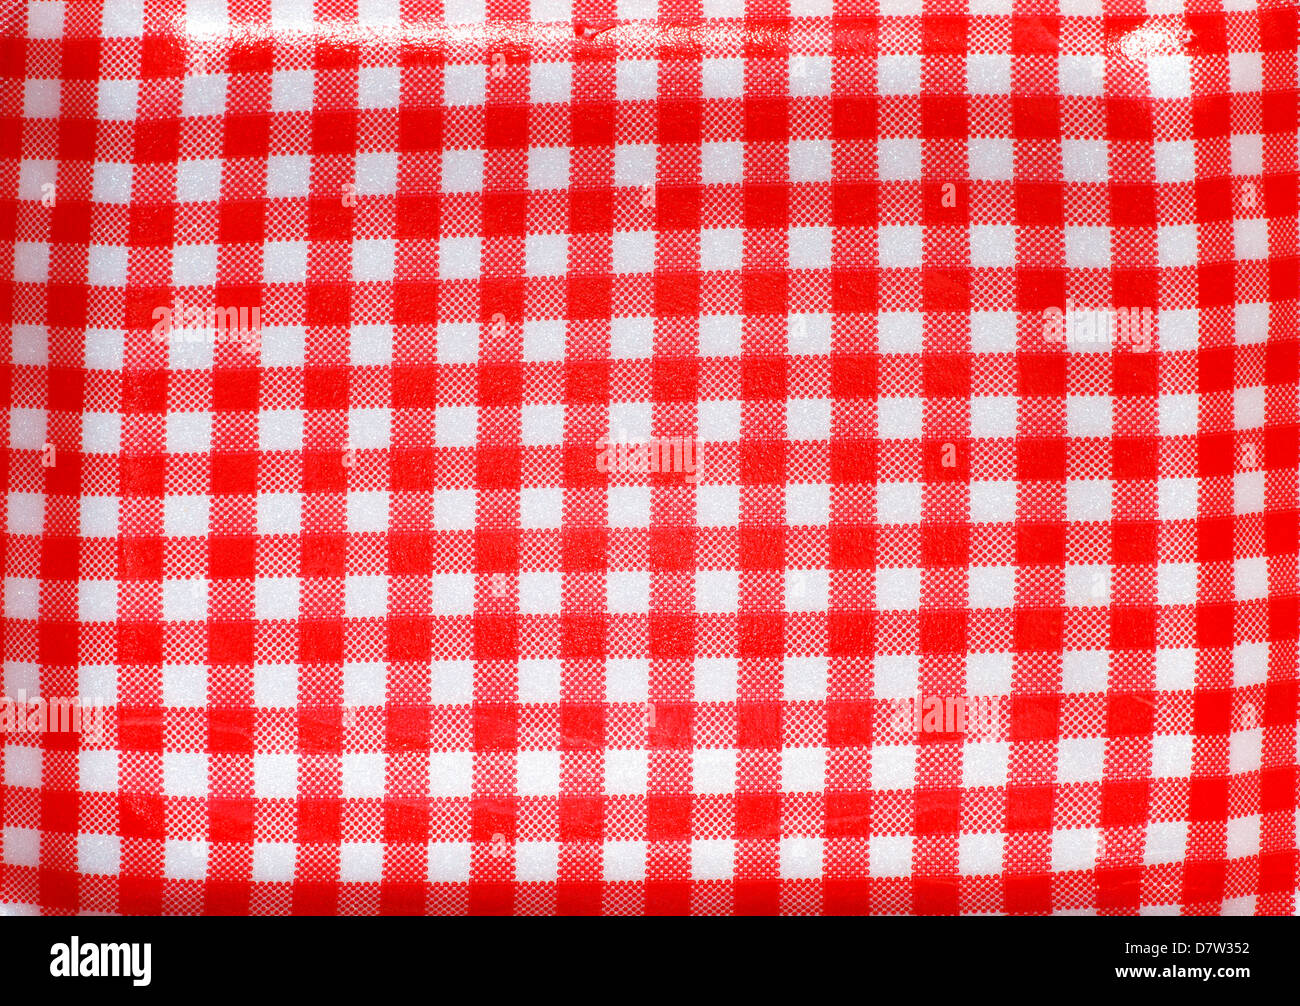 Red checked textile. - Stock Image